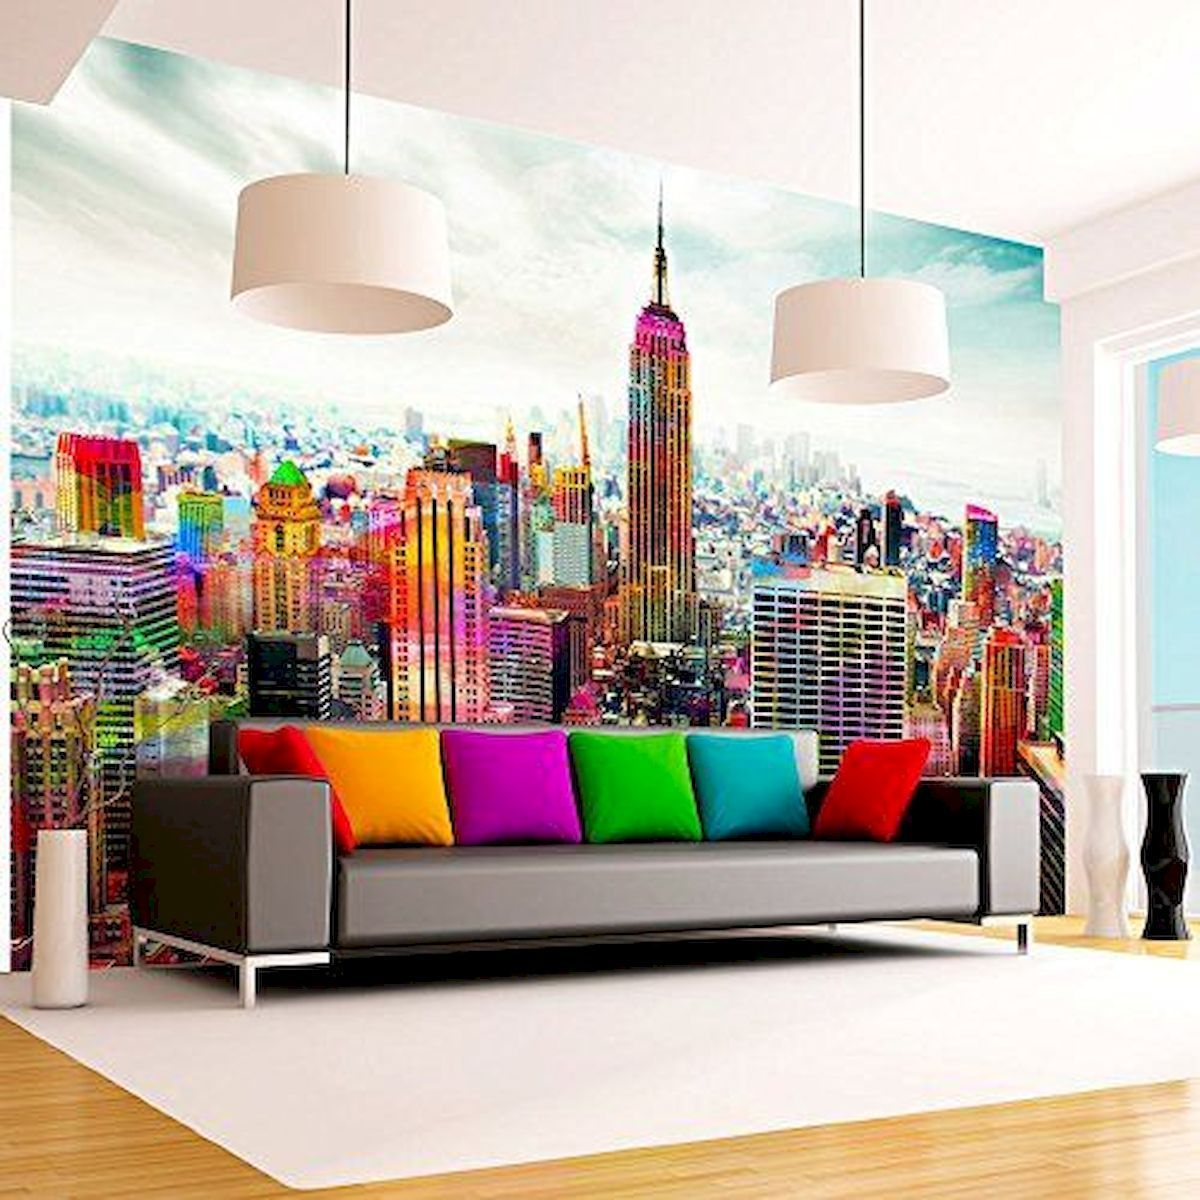 20 Trendy Ideas For A Home Office With Skylights: 60 Most Elegant Wall Art Ideas For Living Room Makeover